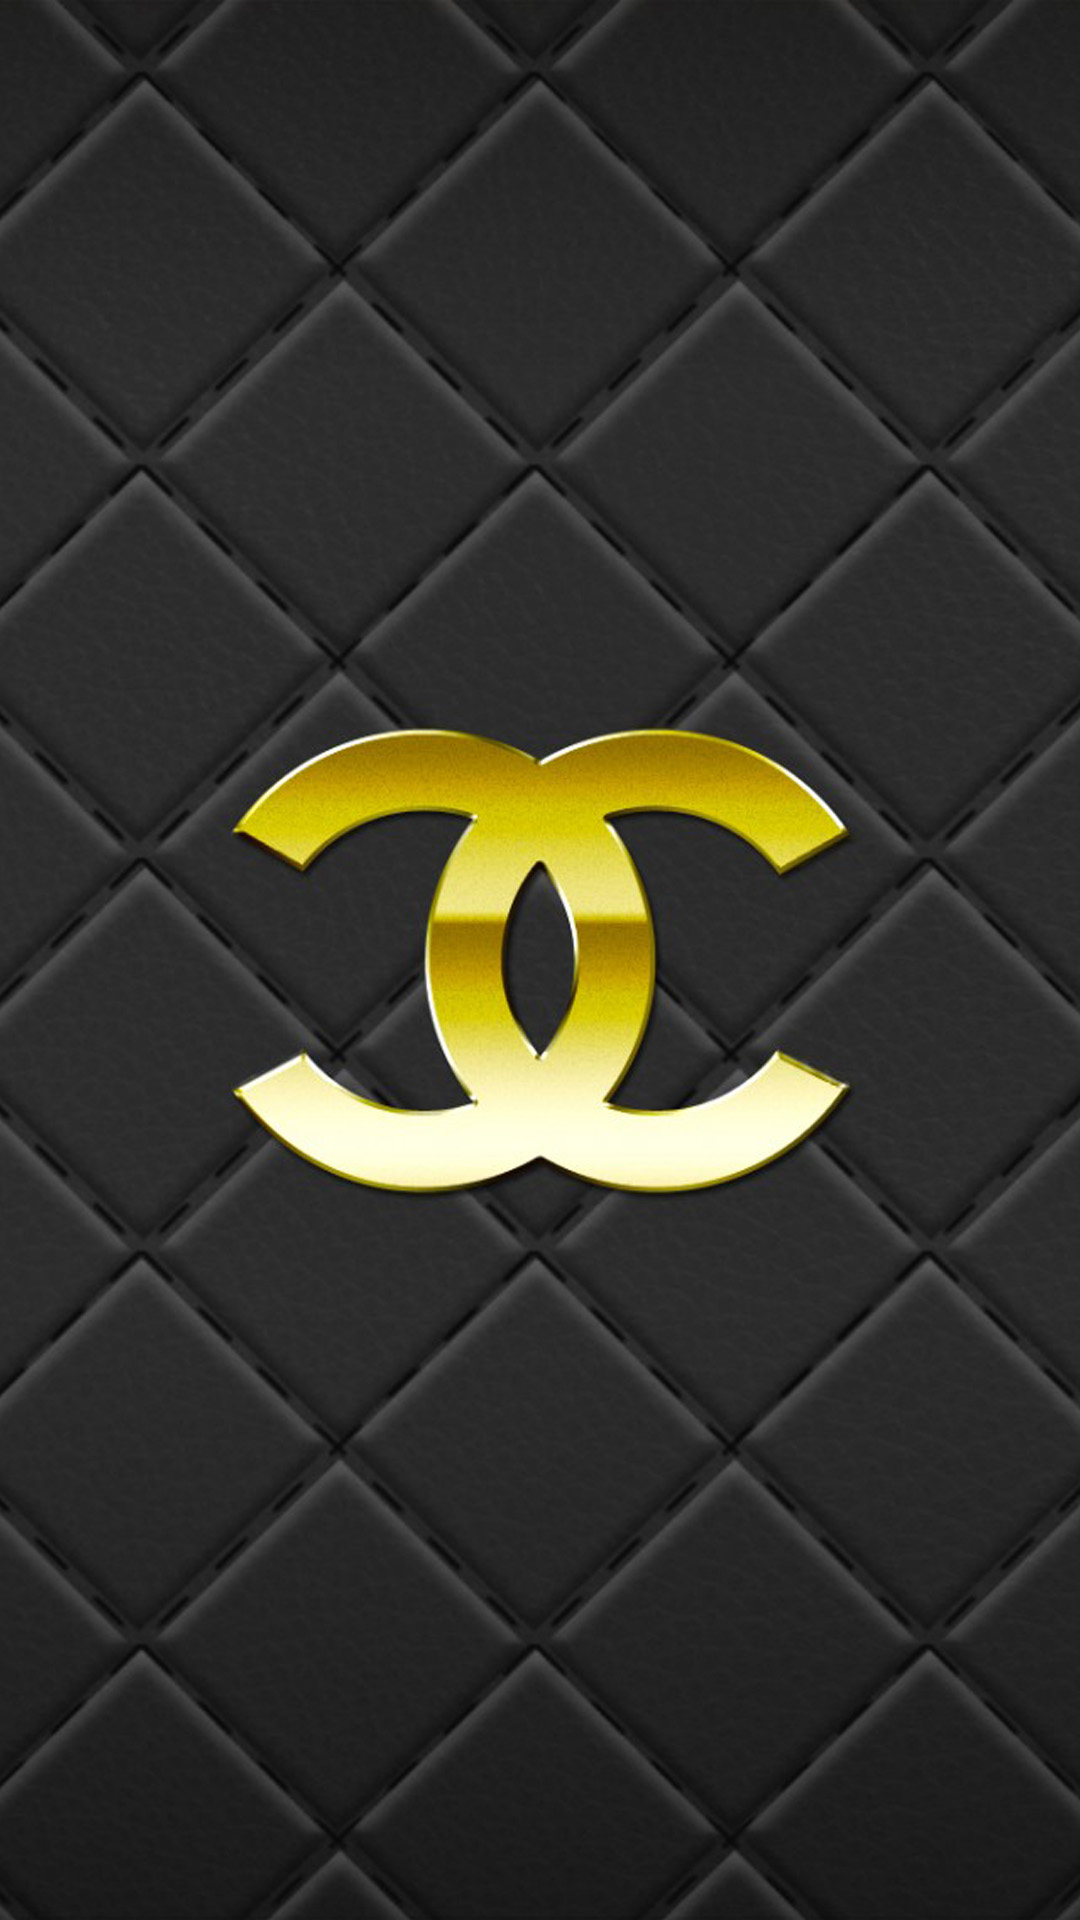 Chanel logo Nexus 5 Wallpapers Nexus 5 wallpapers and 1080x1920